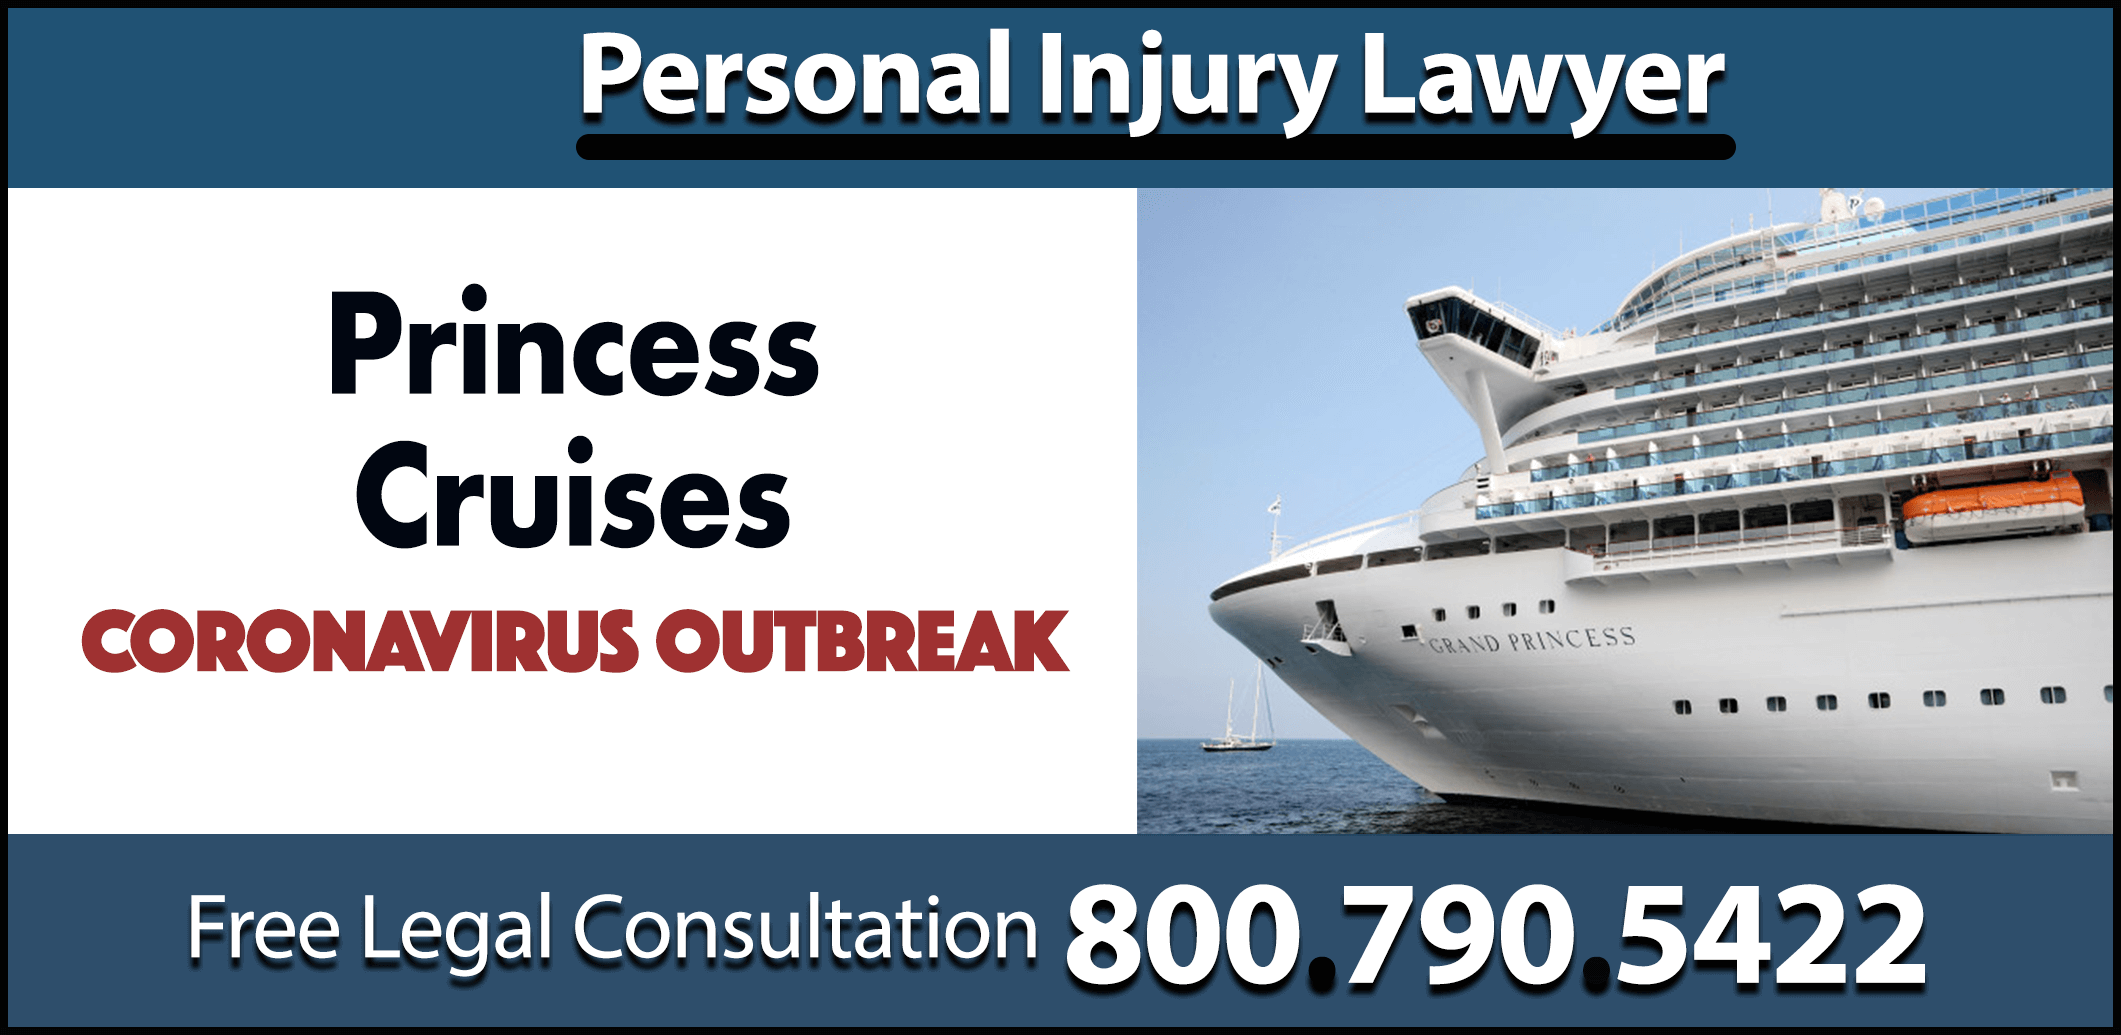 princess cruises grand princess coronavirus covid19 cdcp cruise lawsuit personal injury lawyer compensation attorney